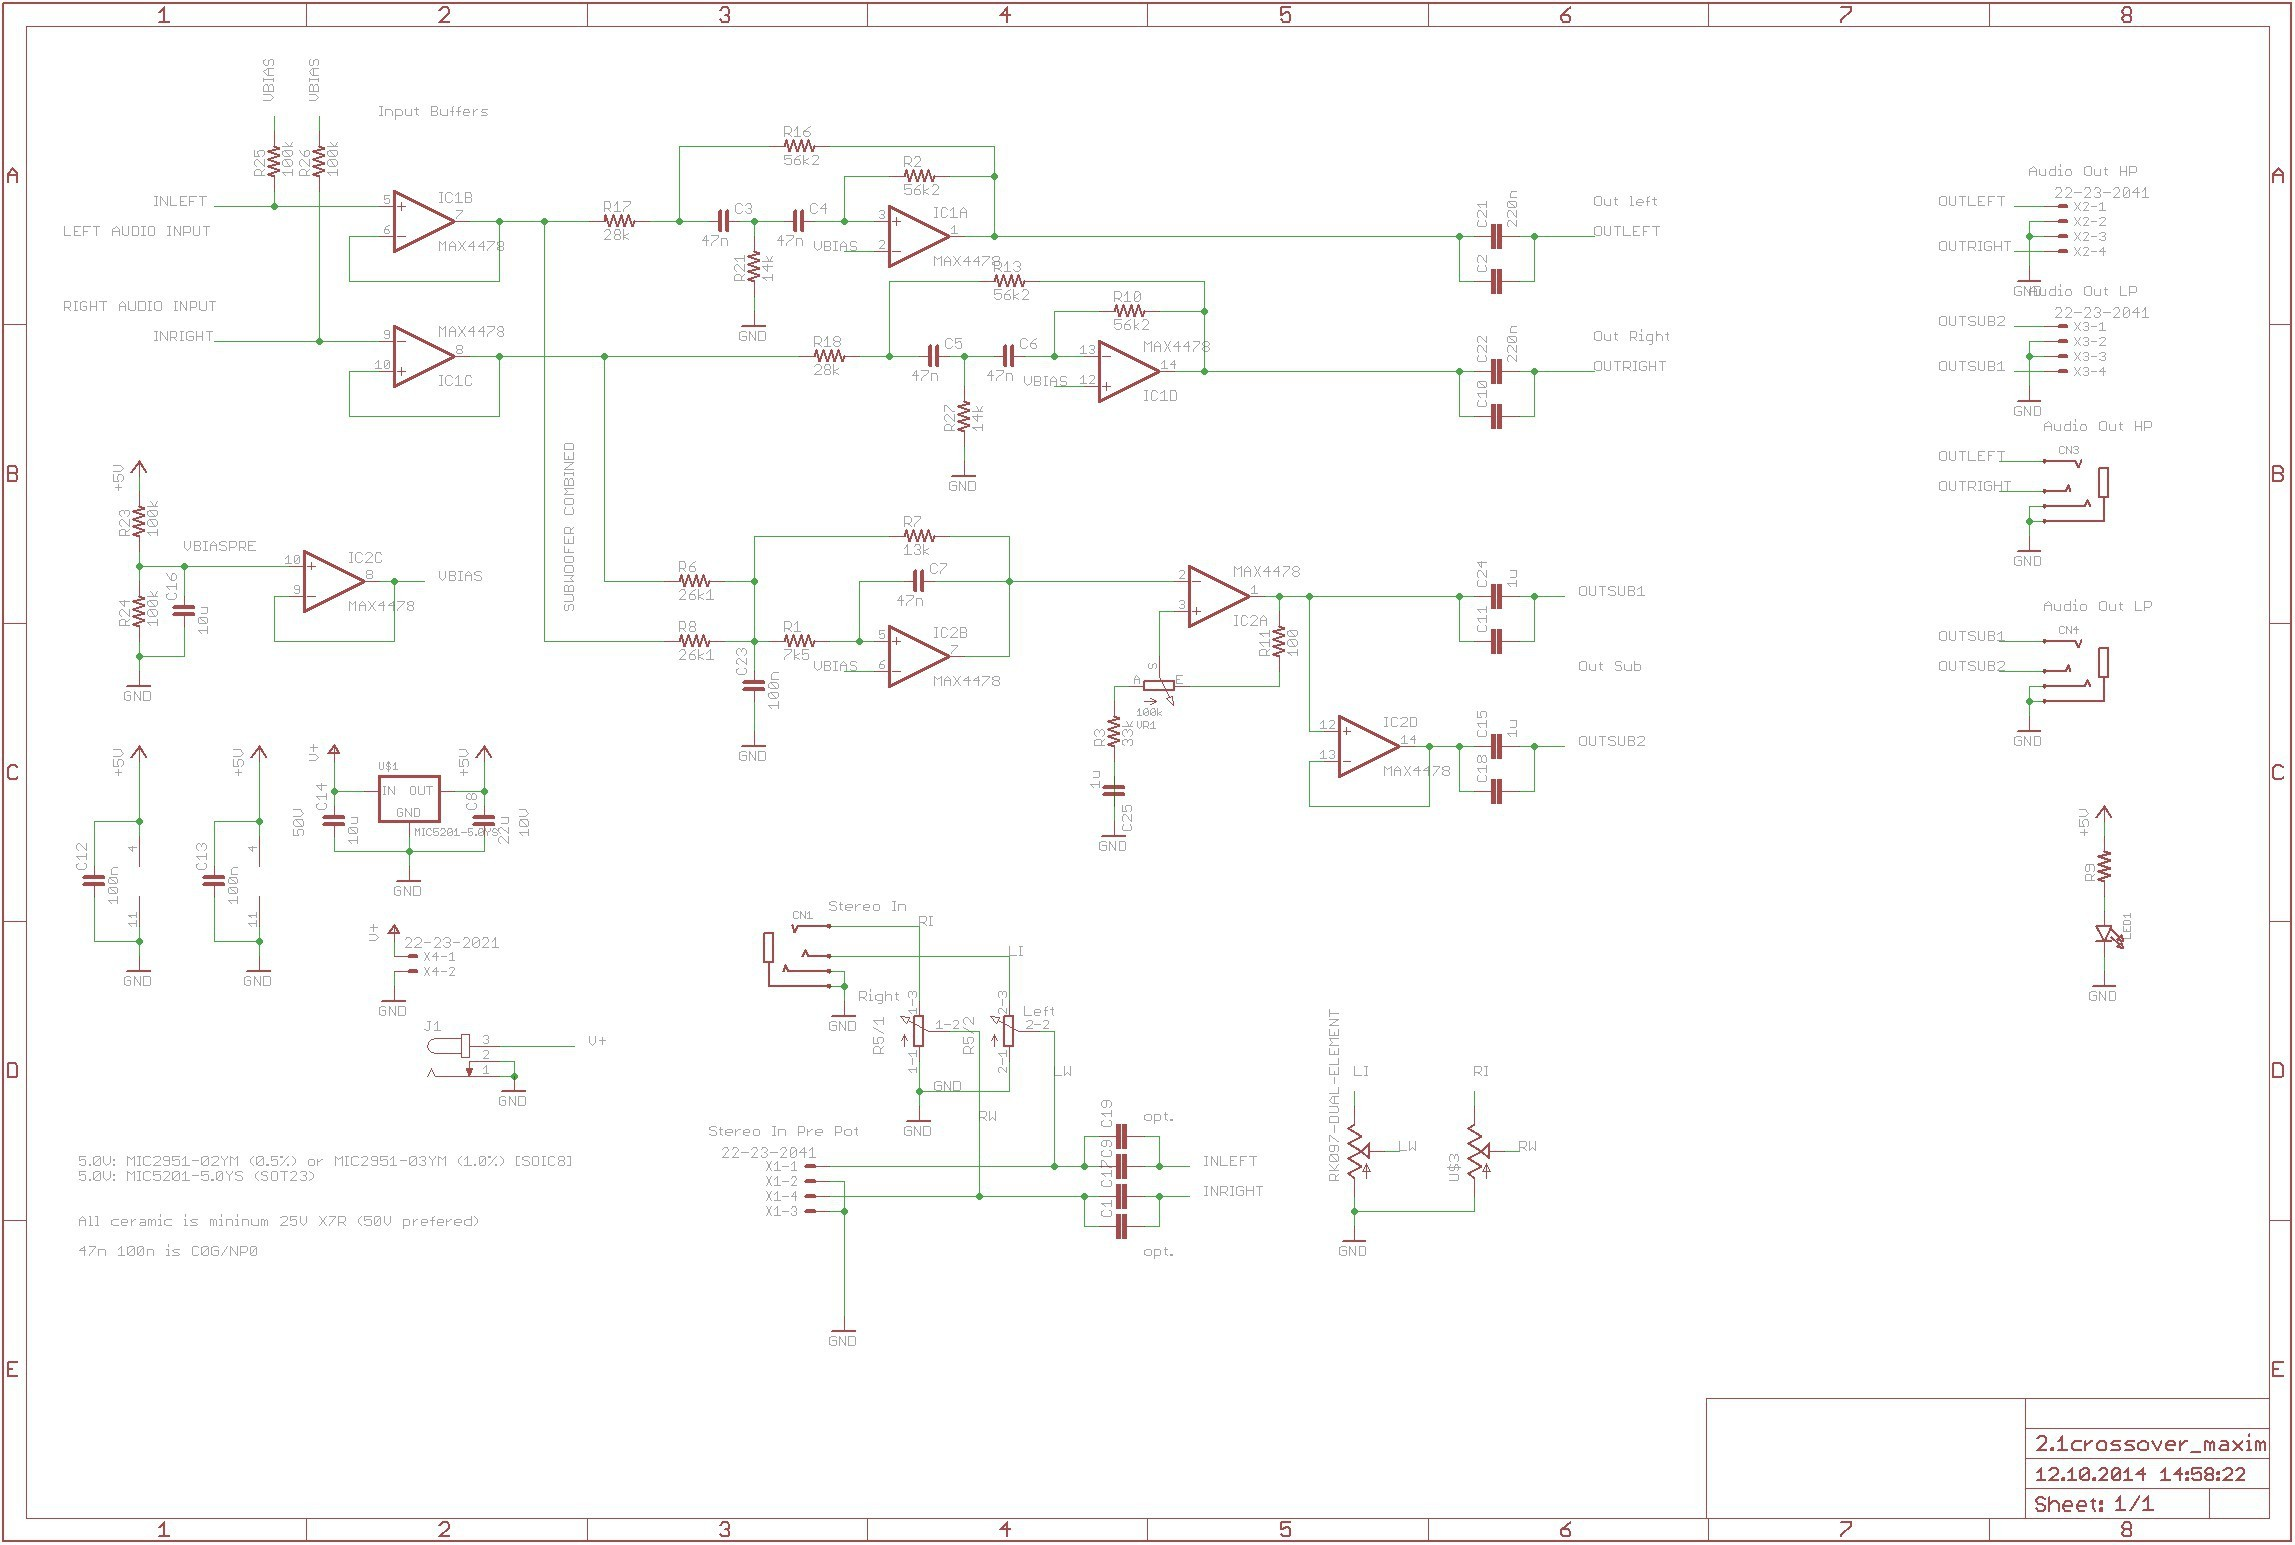 Aktive Crossoverfrequenzweiche Mit Max4478 360customs Crossover Schematic Rev 0d wiring lighting circuit scr circuit